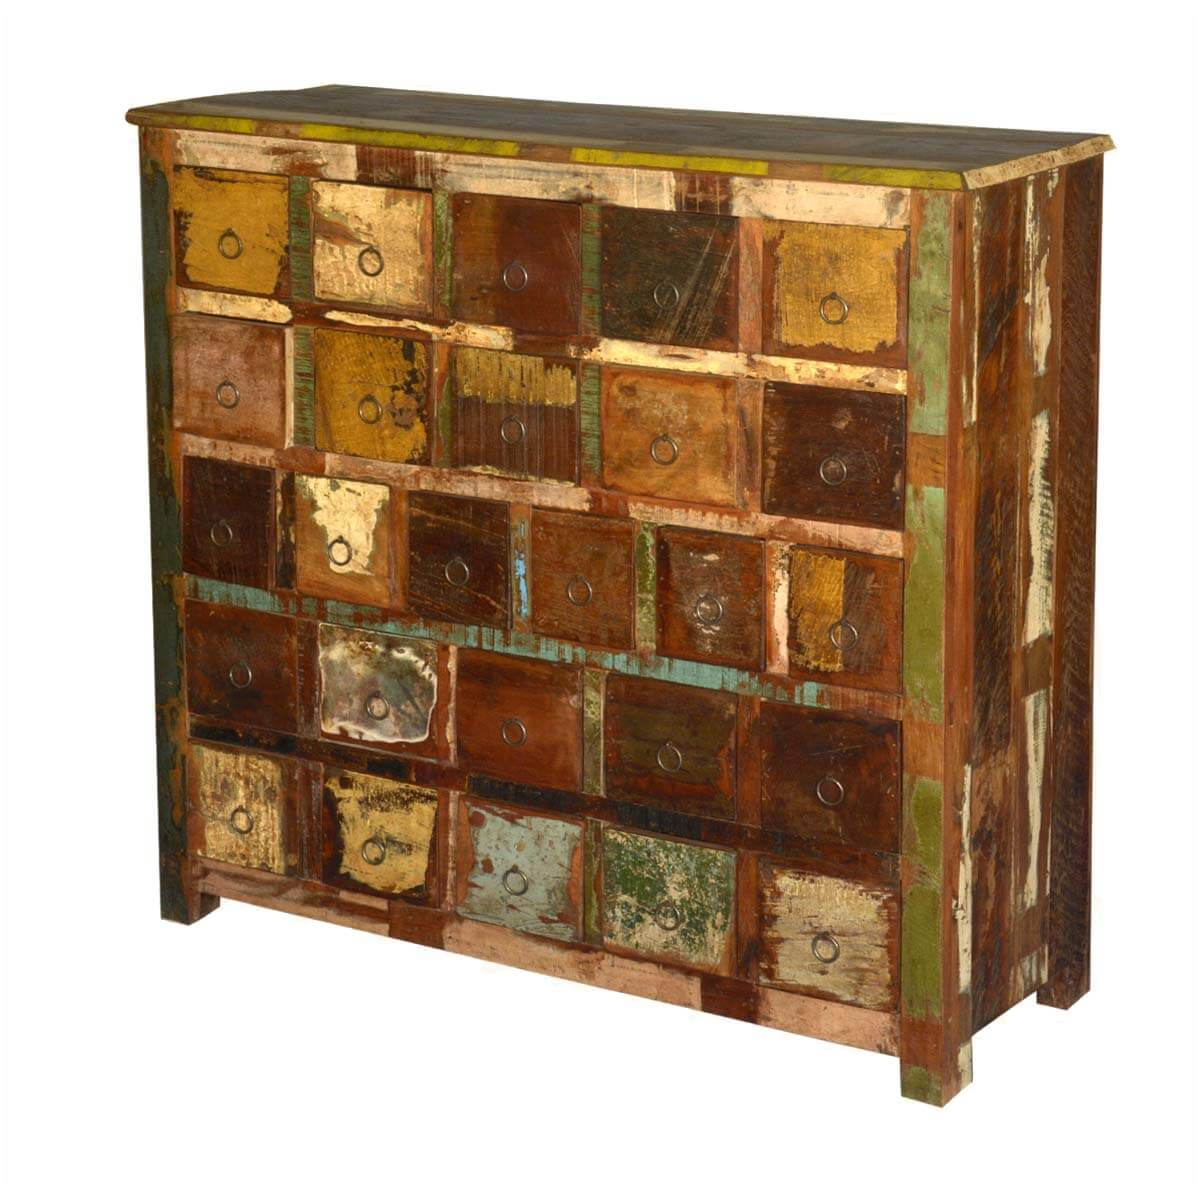 Wood Storage Cabinets: Rustic Reclaimed Wood Apothecary Storage Cabinet With 26